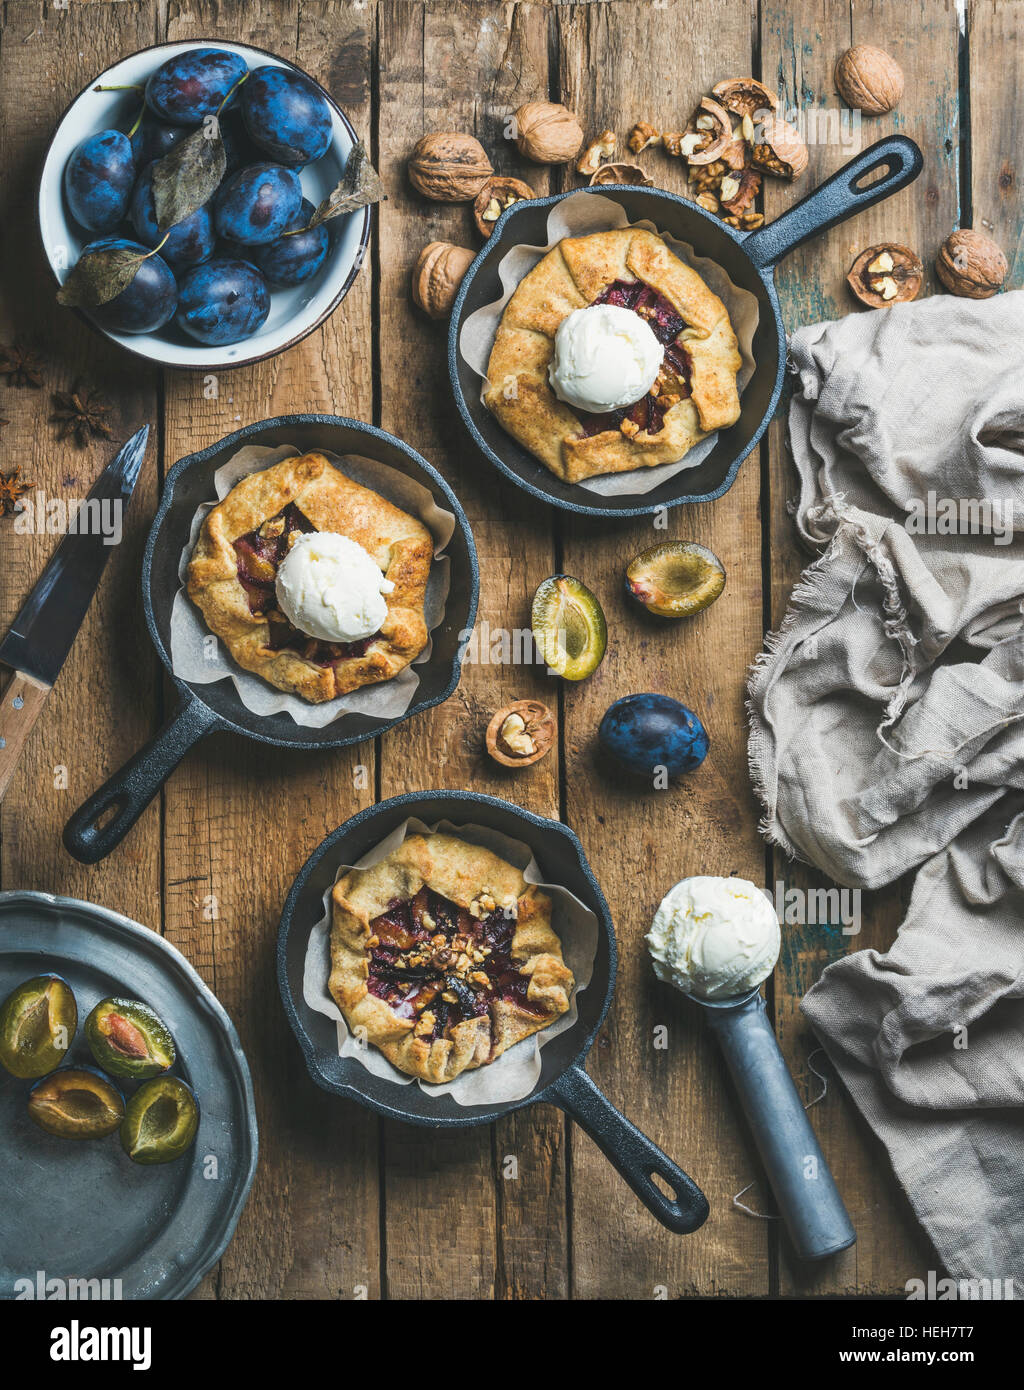 Plum and walnut crostata pie with ice-cream scoops in individual cast iron pans over rustic wooden table, top view. - Stock Image